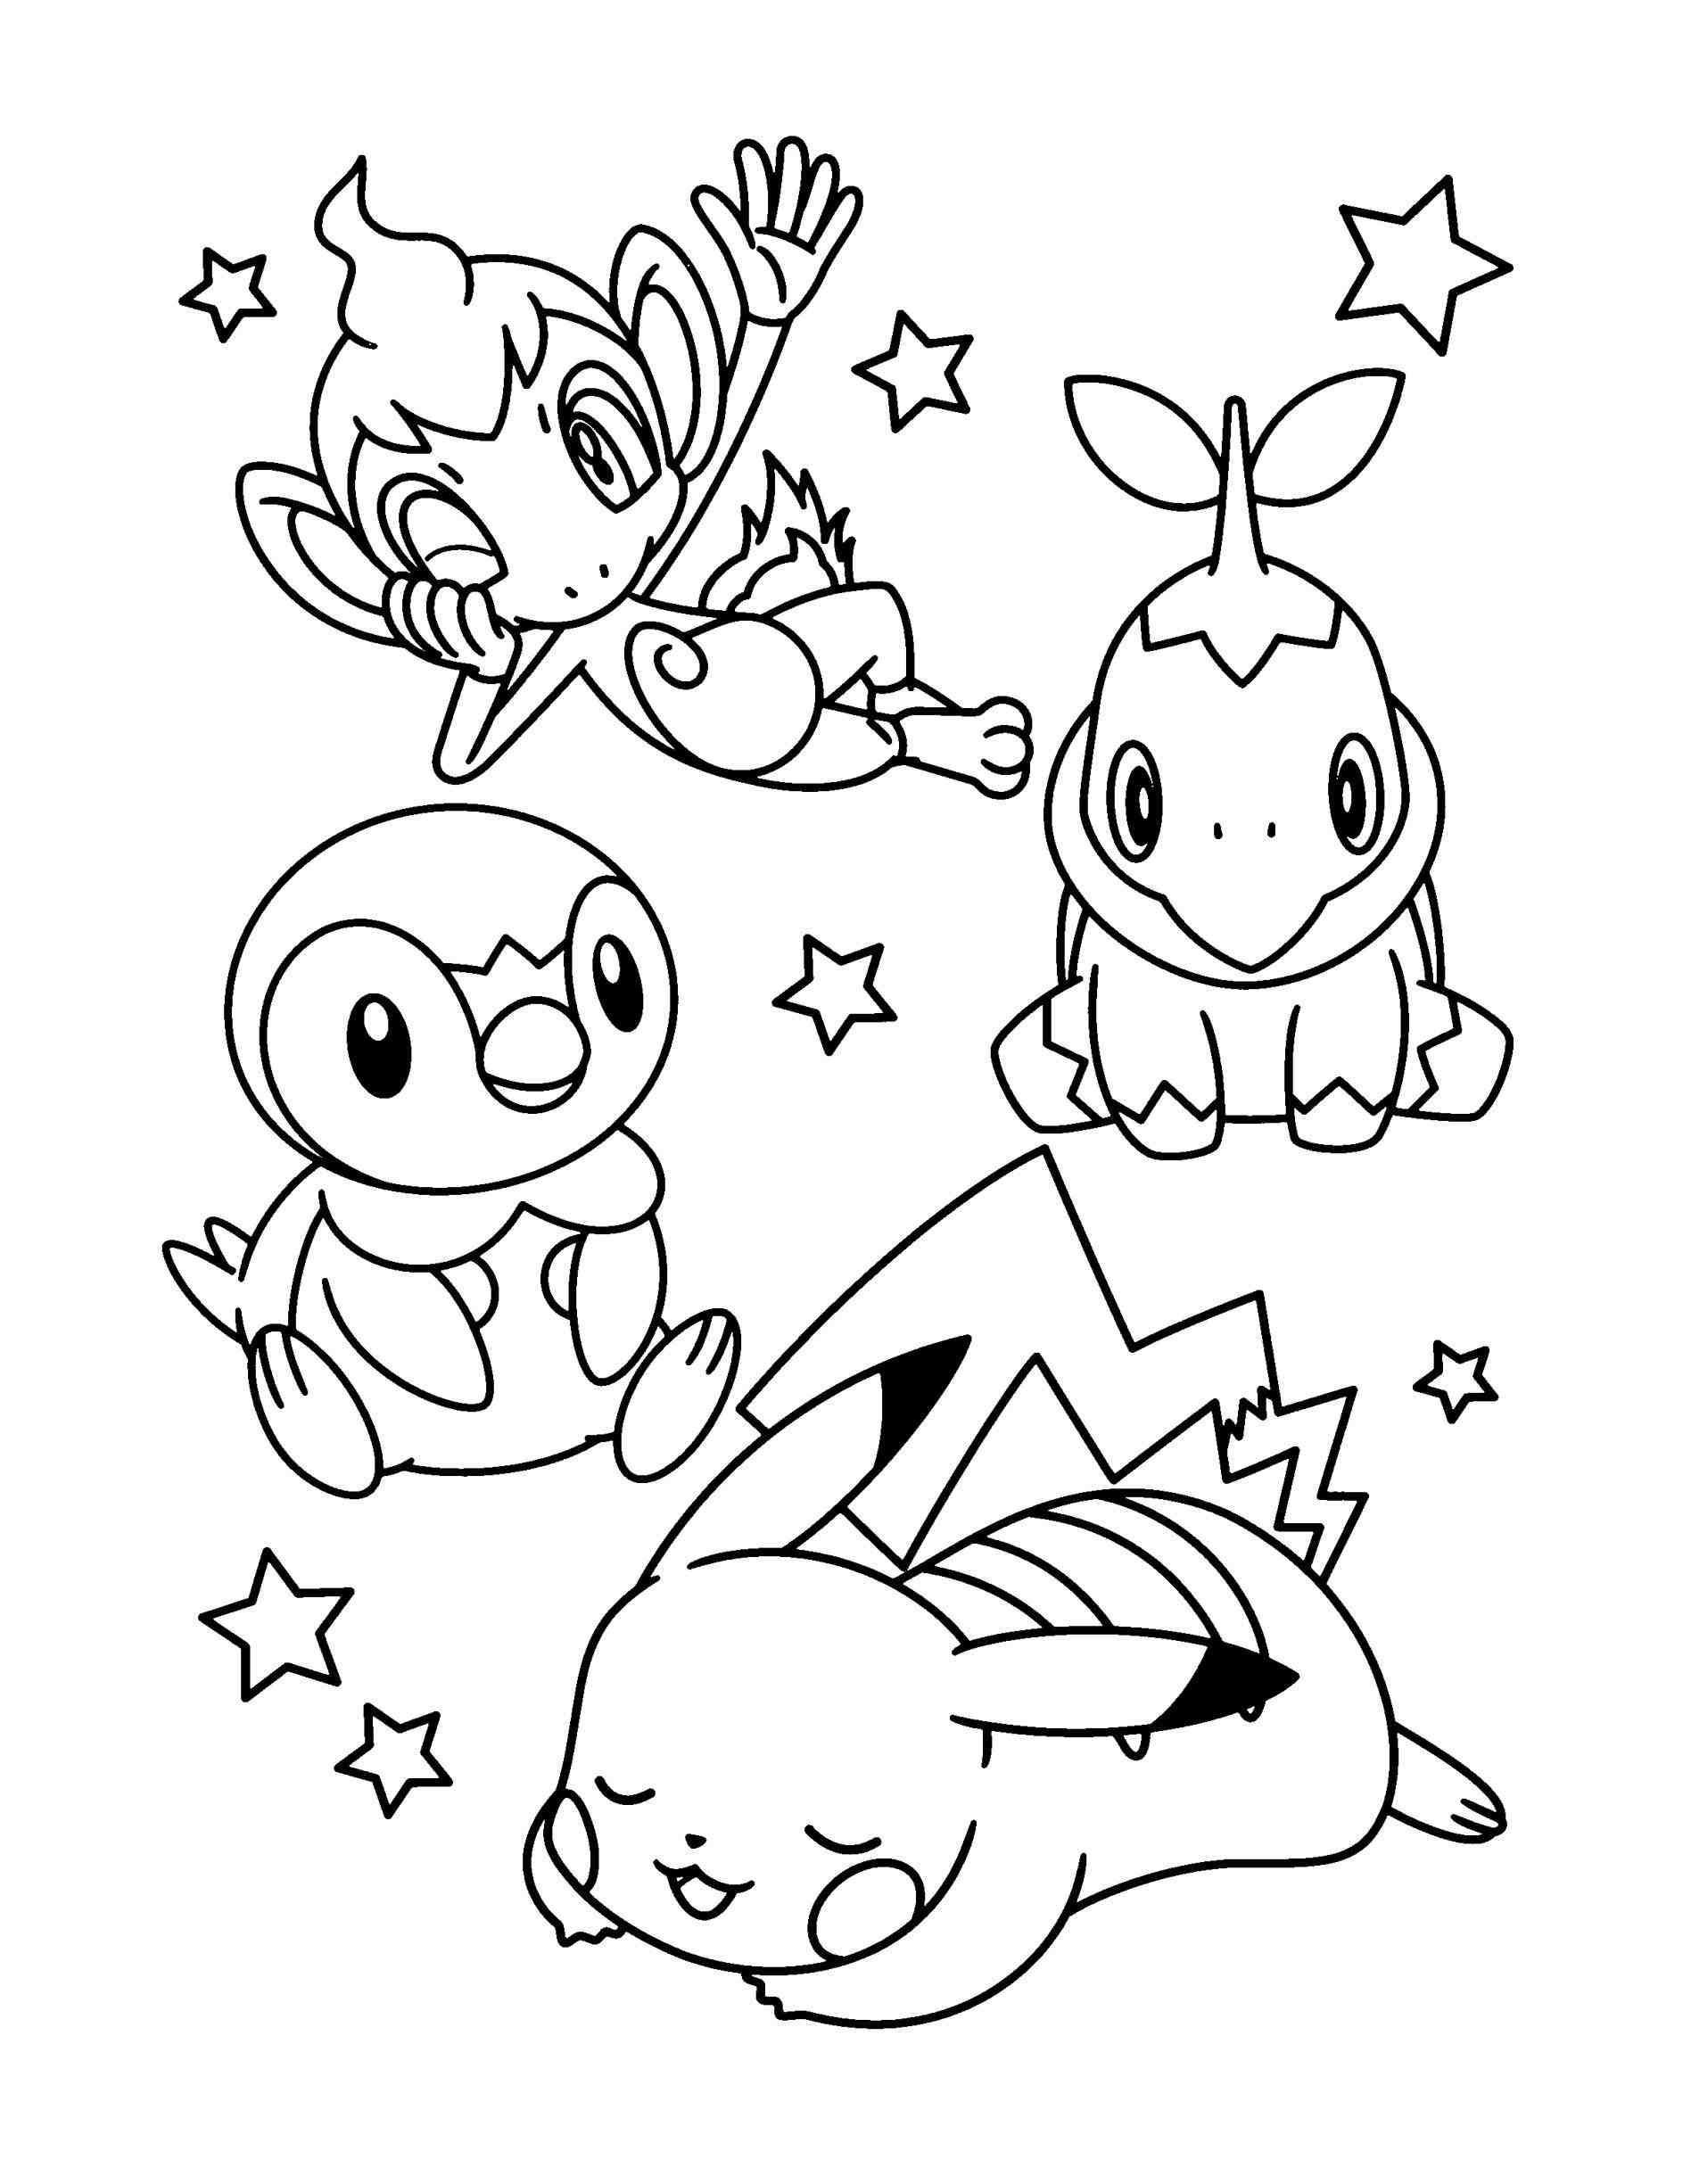 Pokemon Coloring Pages Pikachu And Friends Anime Pictures Dessin Pokemon A Imprimer Dessin Pokemon Voiture Coloriage